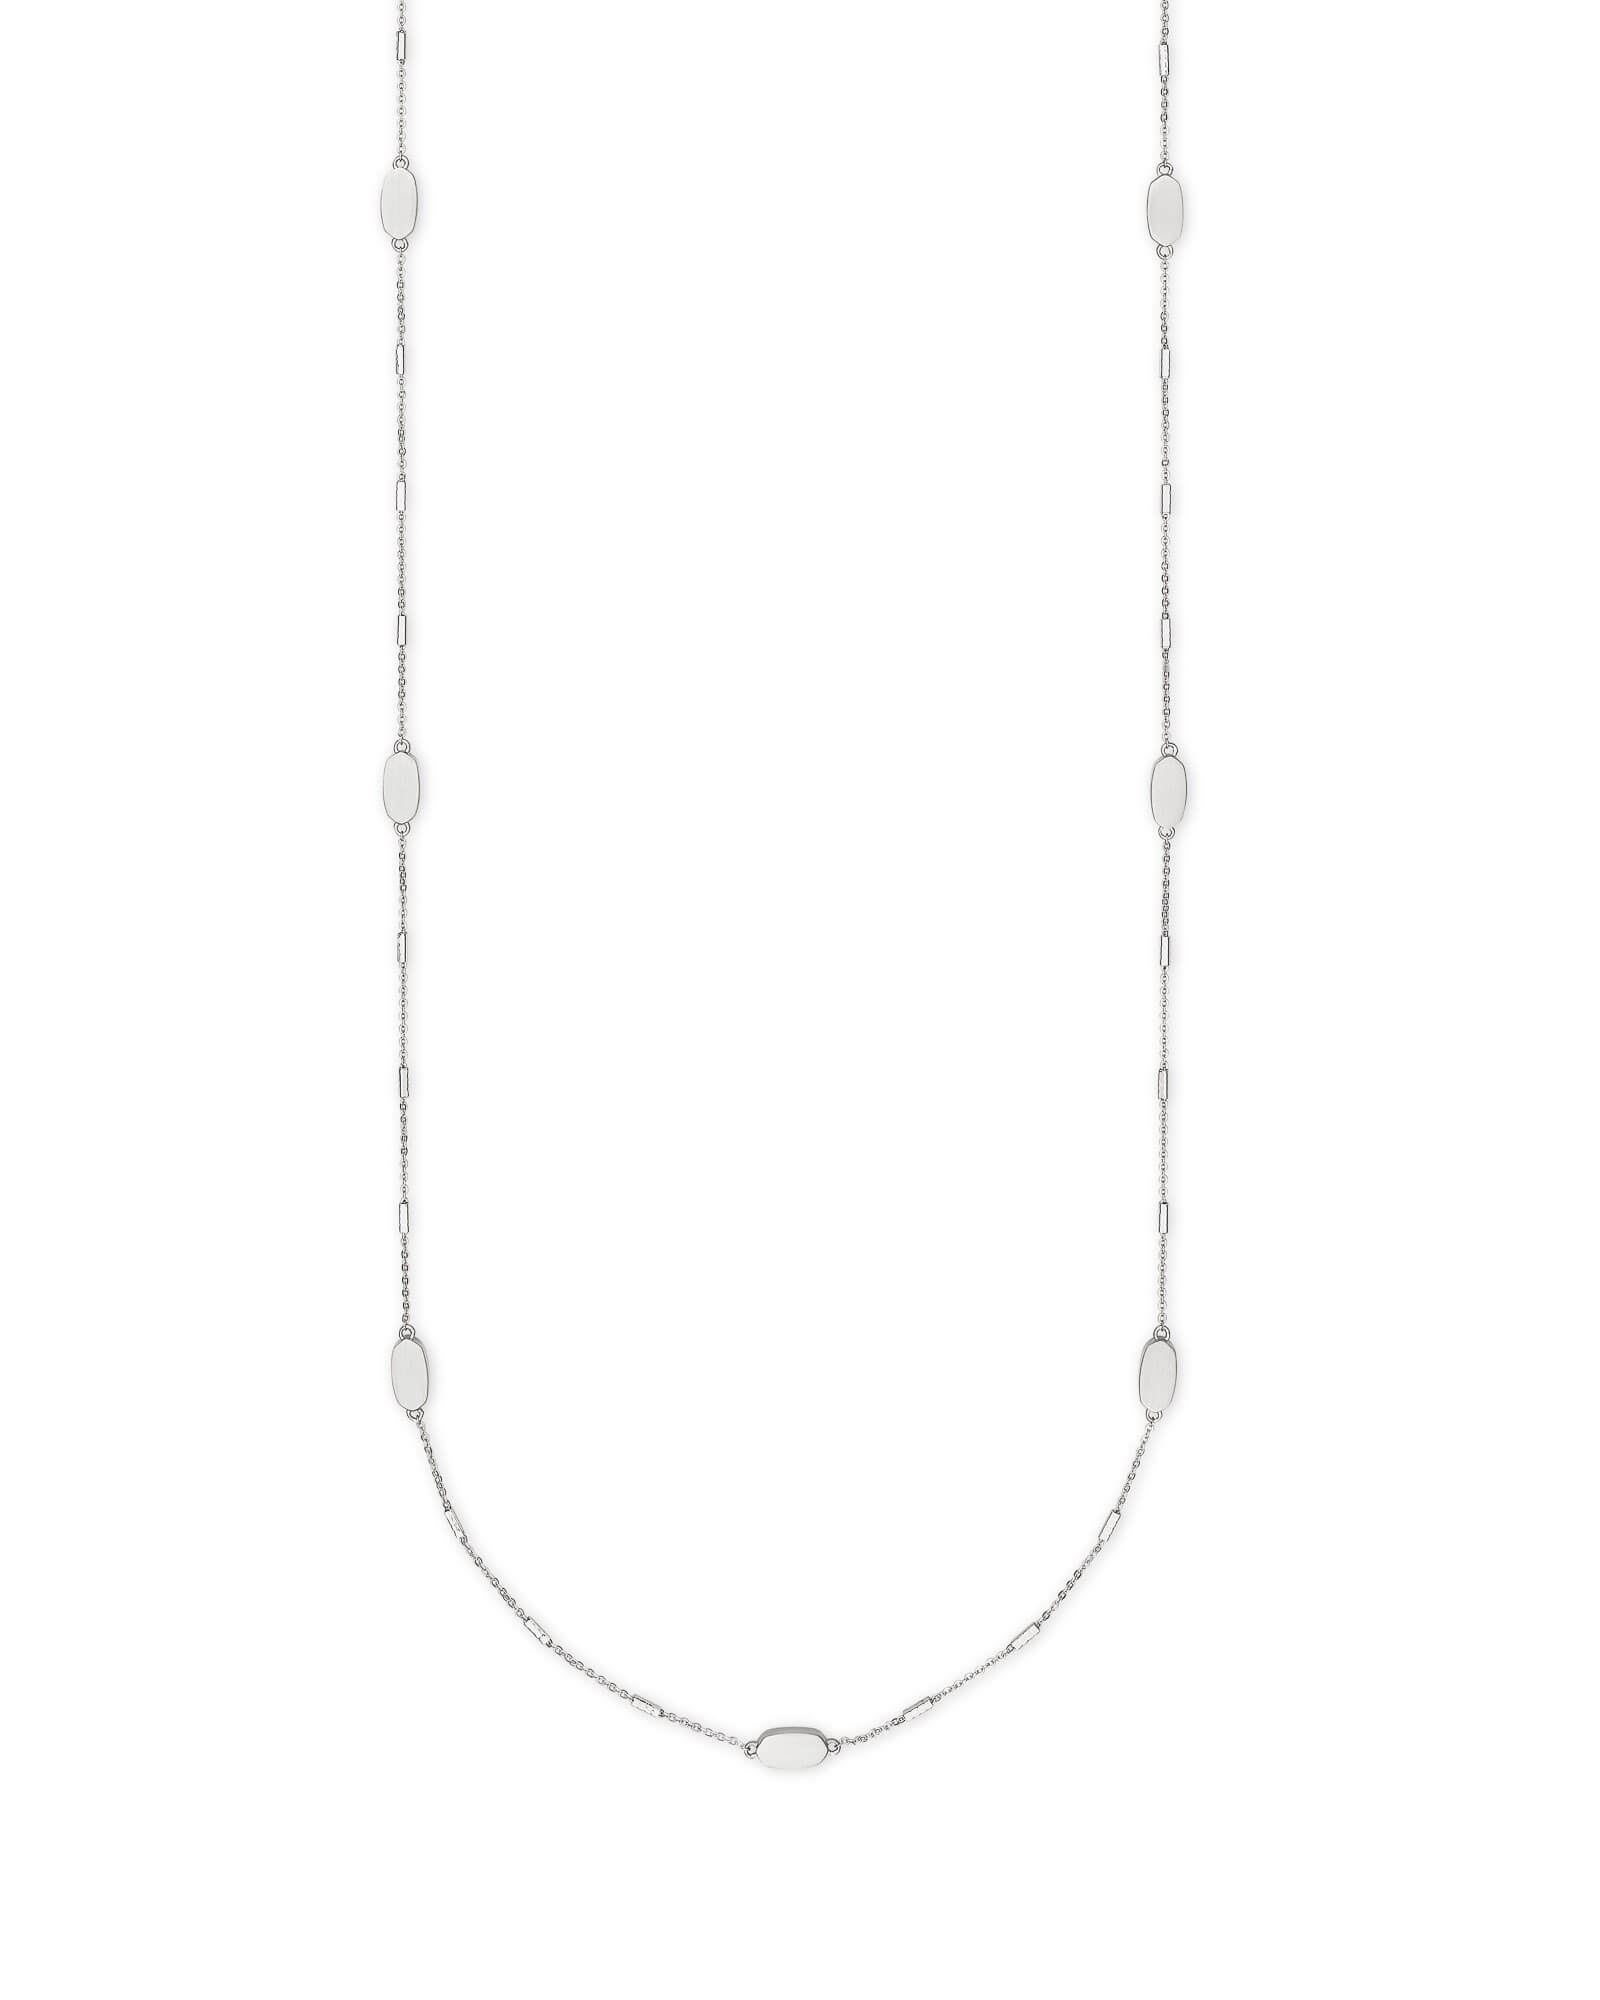 Franklin Long Necklace in Bright Silver